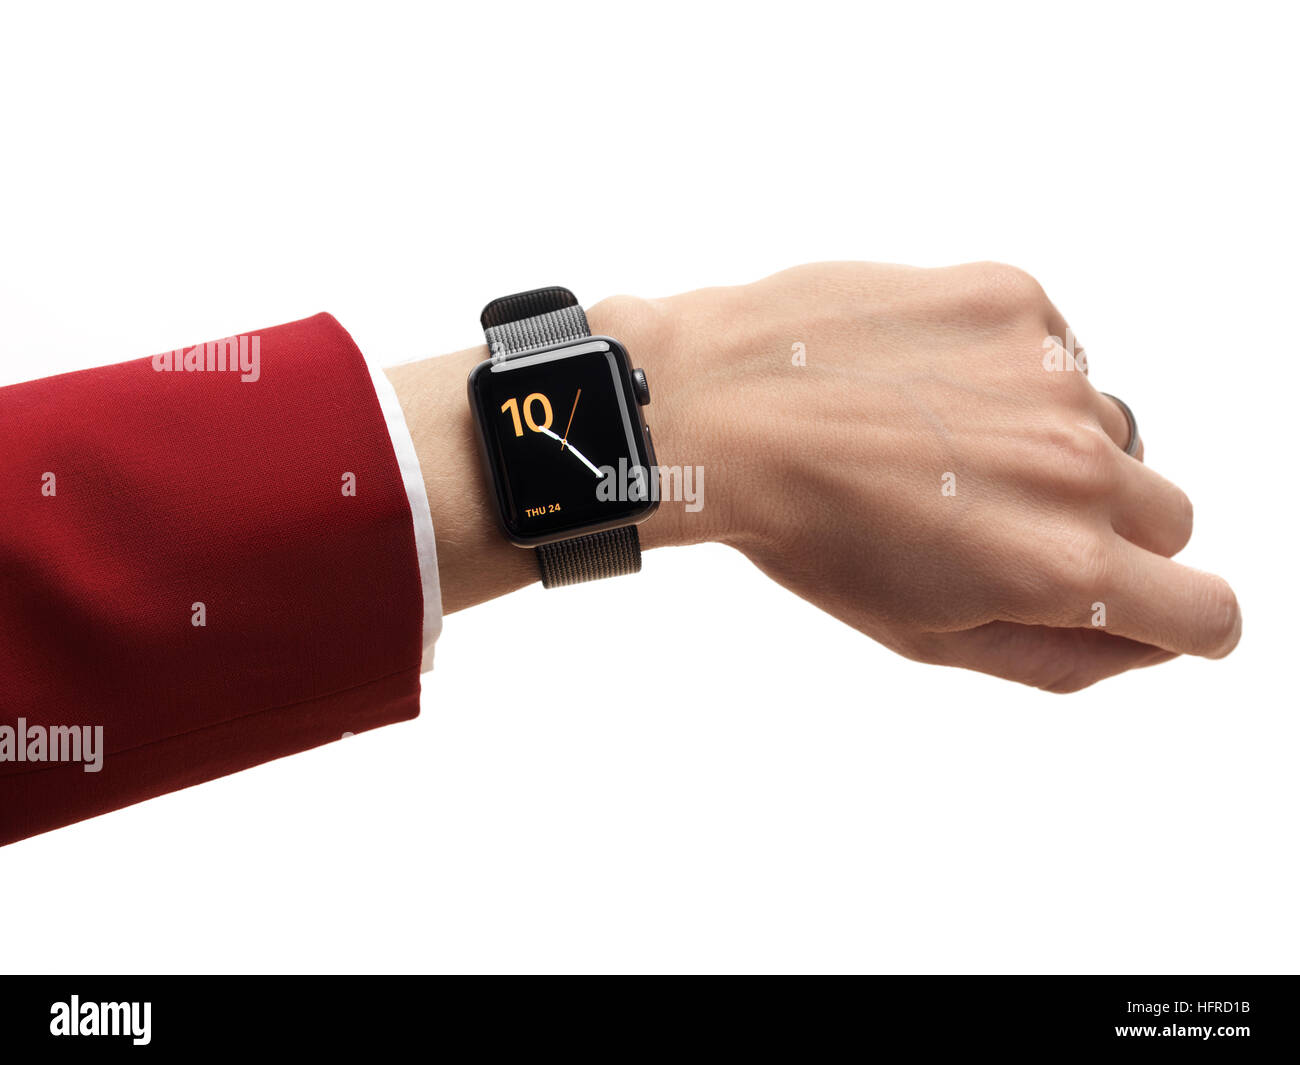 Woman hand with Apple Watch, series 2, smartwatch on her wrist - Stock Image